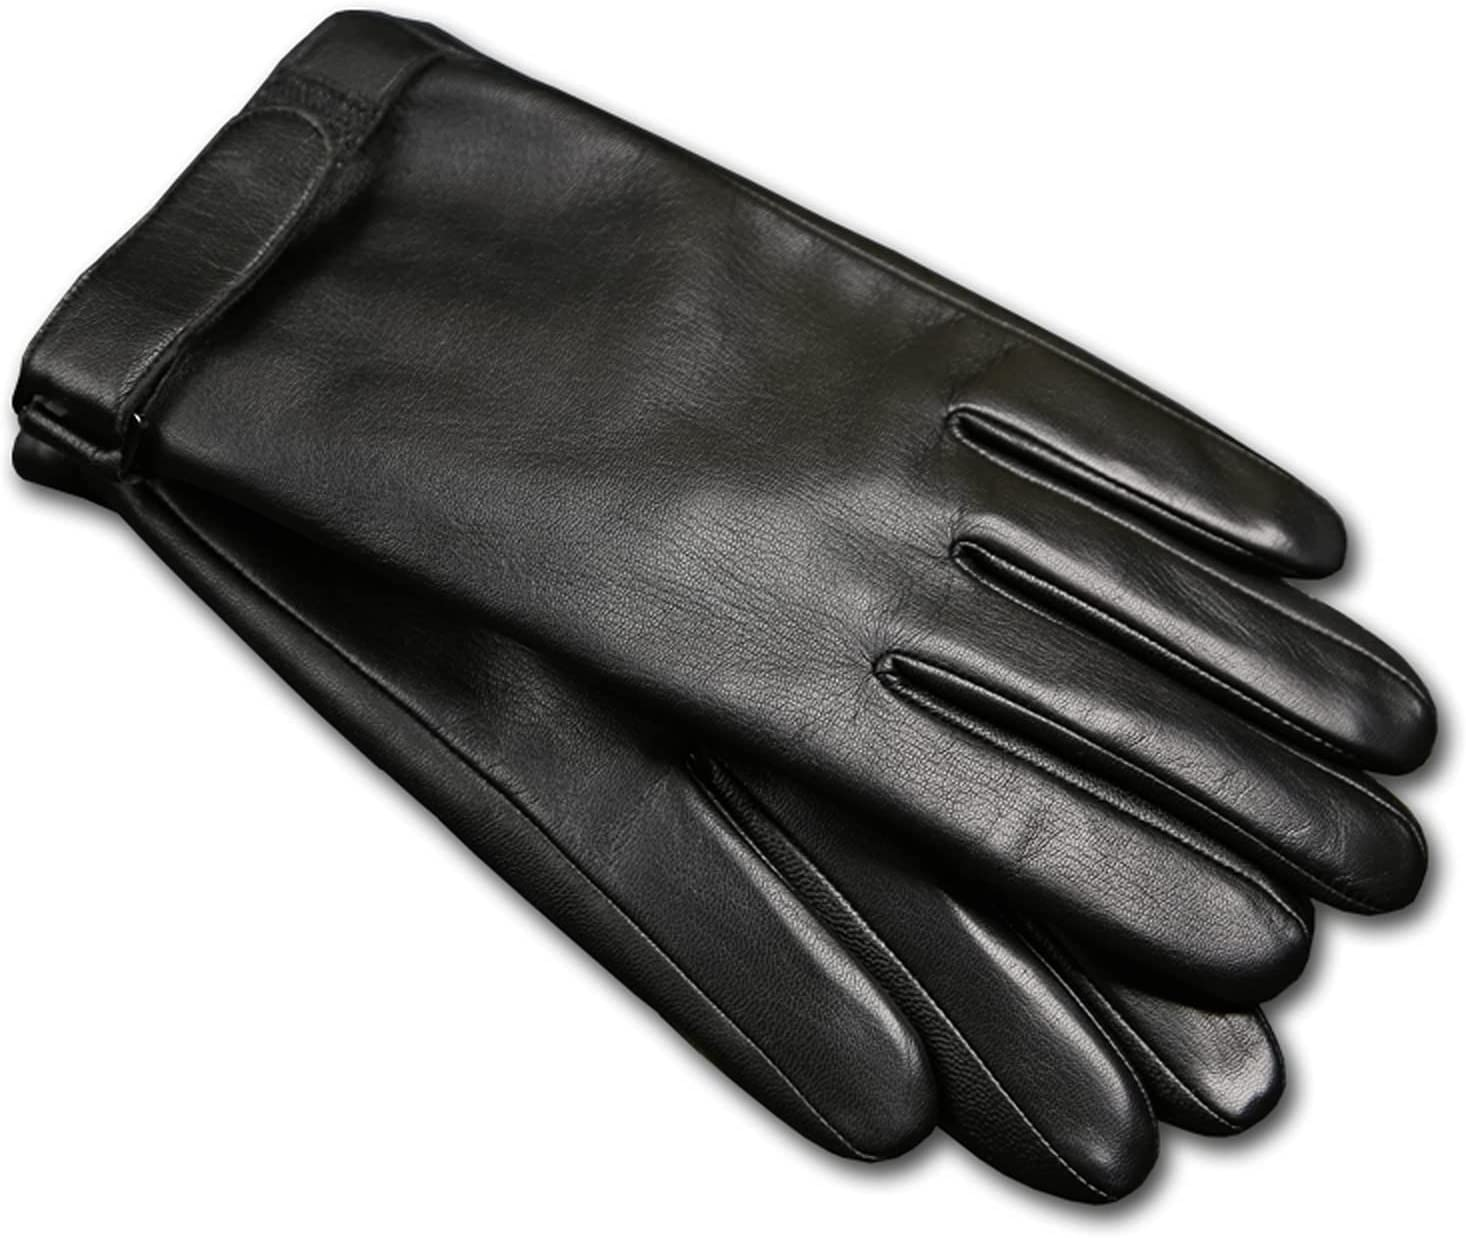 Jjshueryg Men's Winter Plush Thick Warm Gloves, Goatskin Leather Mitten, Windproof Leather Gloves That Can Touch Screen Motorcycle Driving and Riding